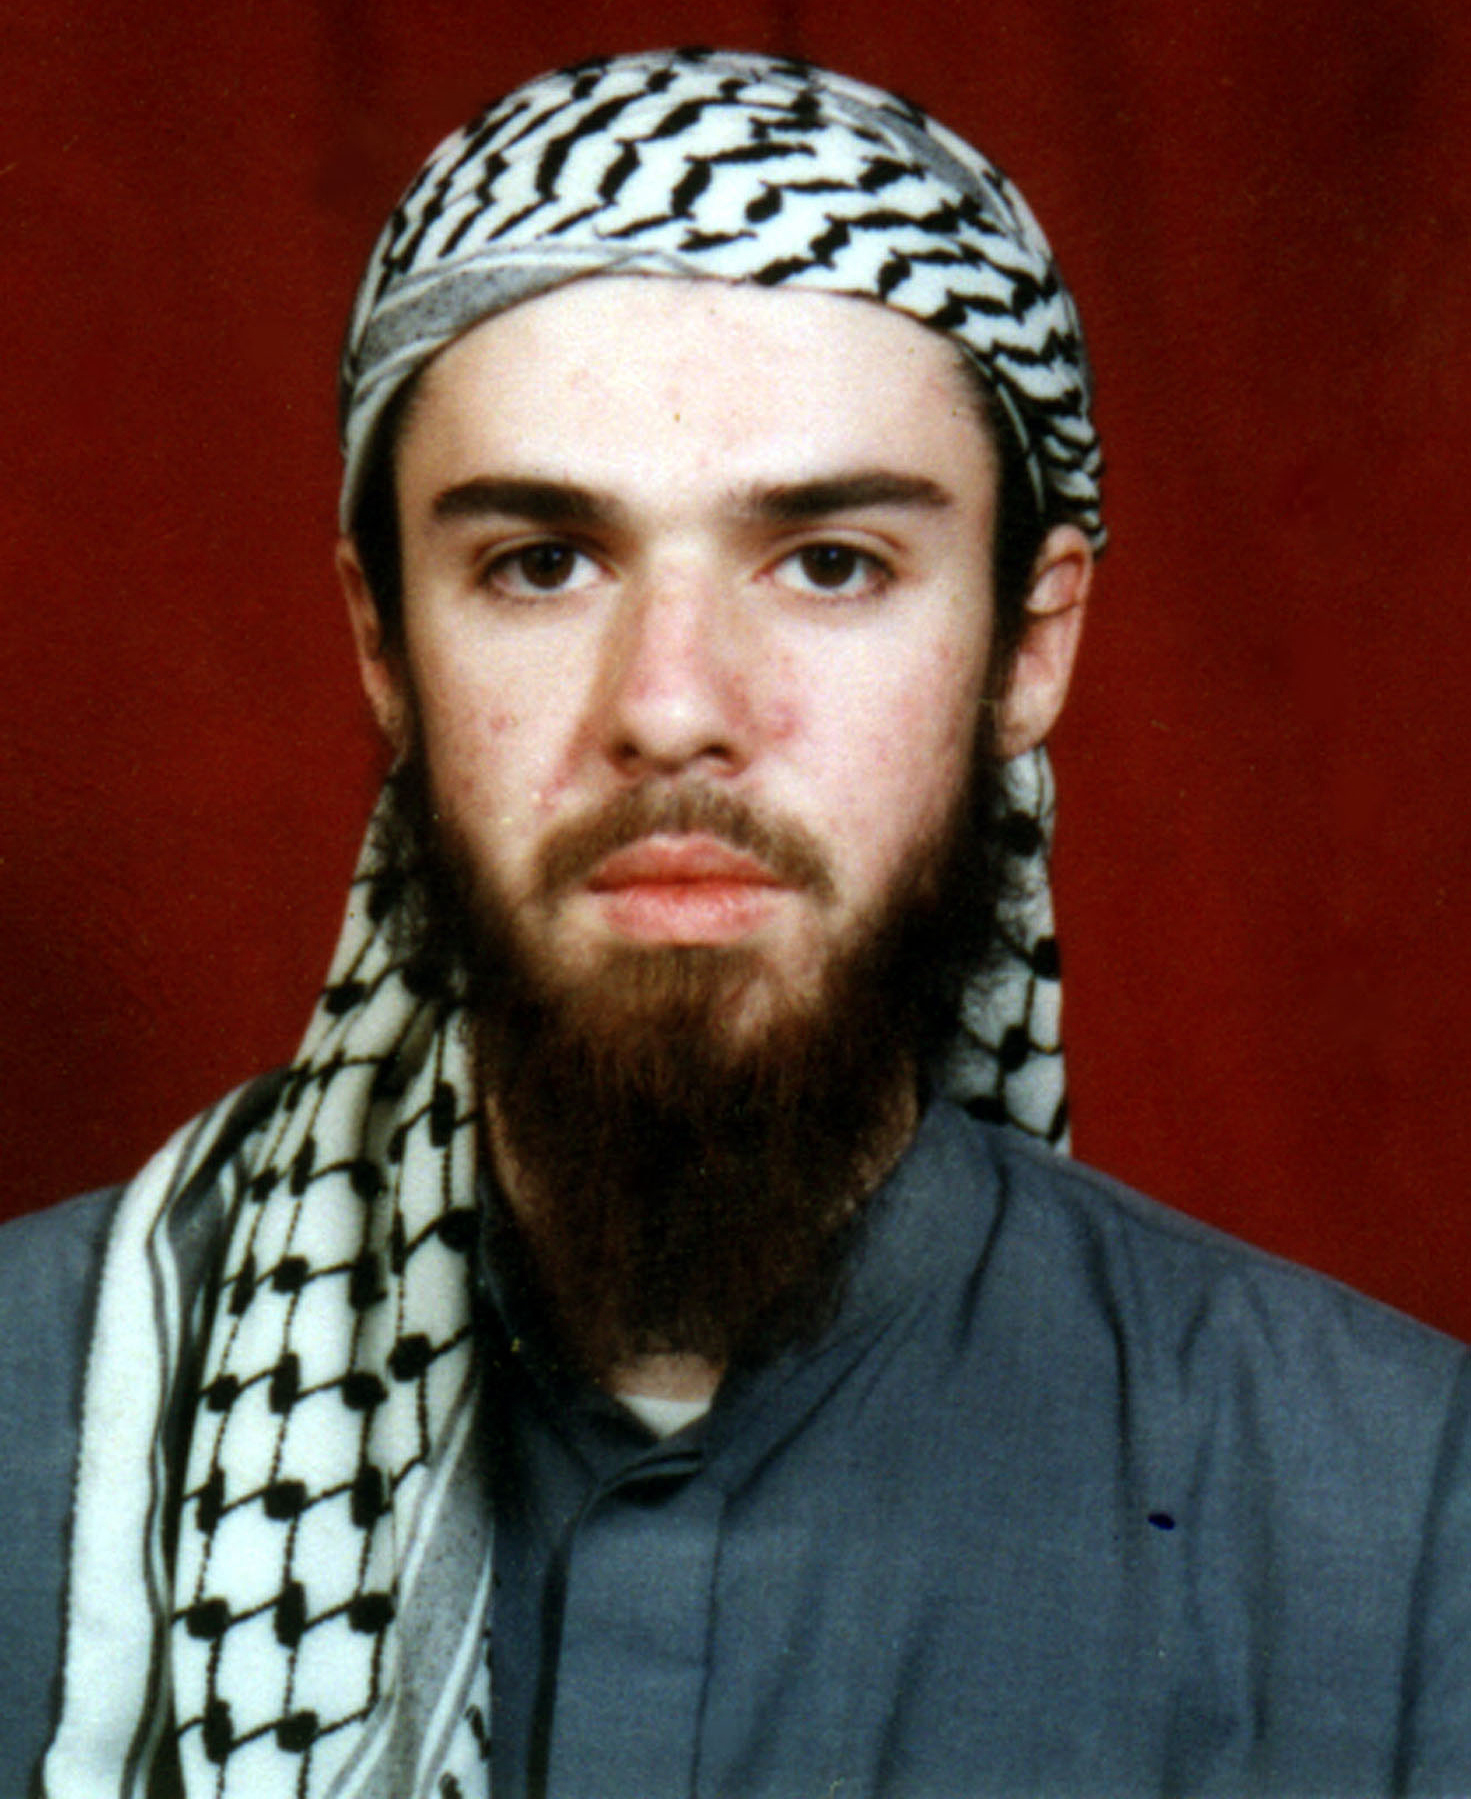 'American Taliban' John Walker Lindh to be released from prison next month